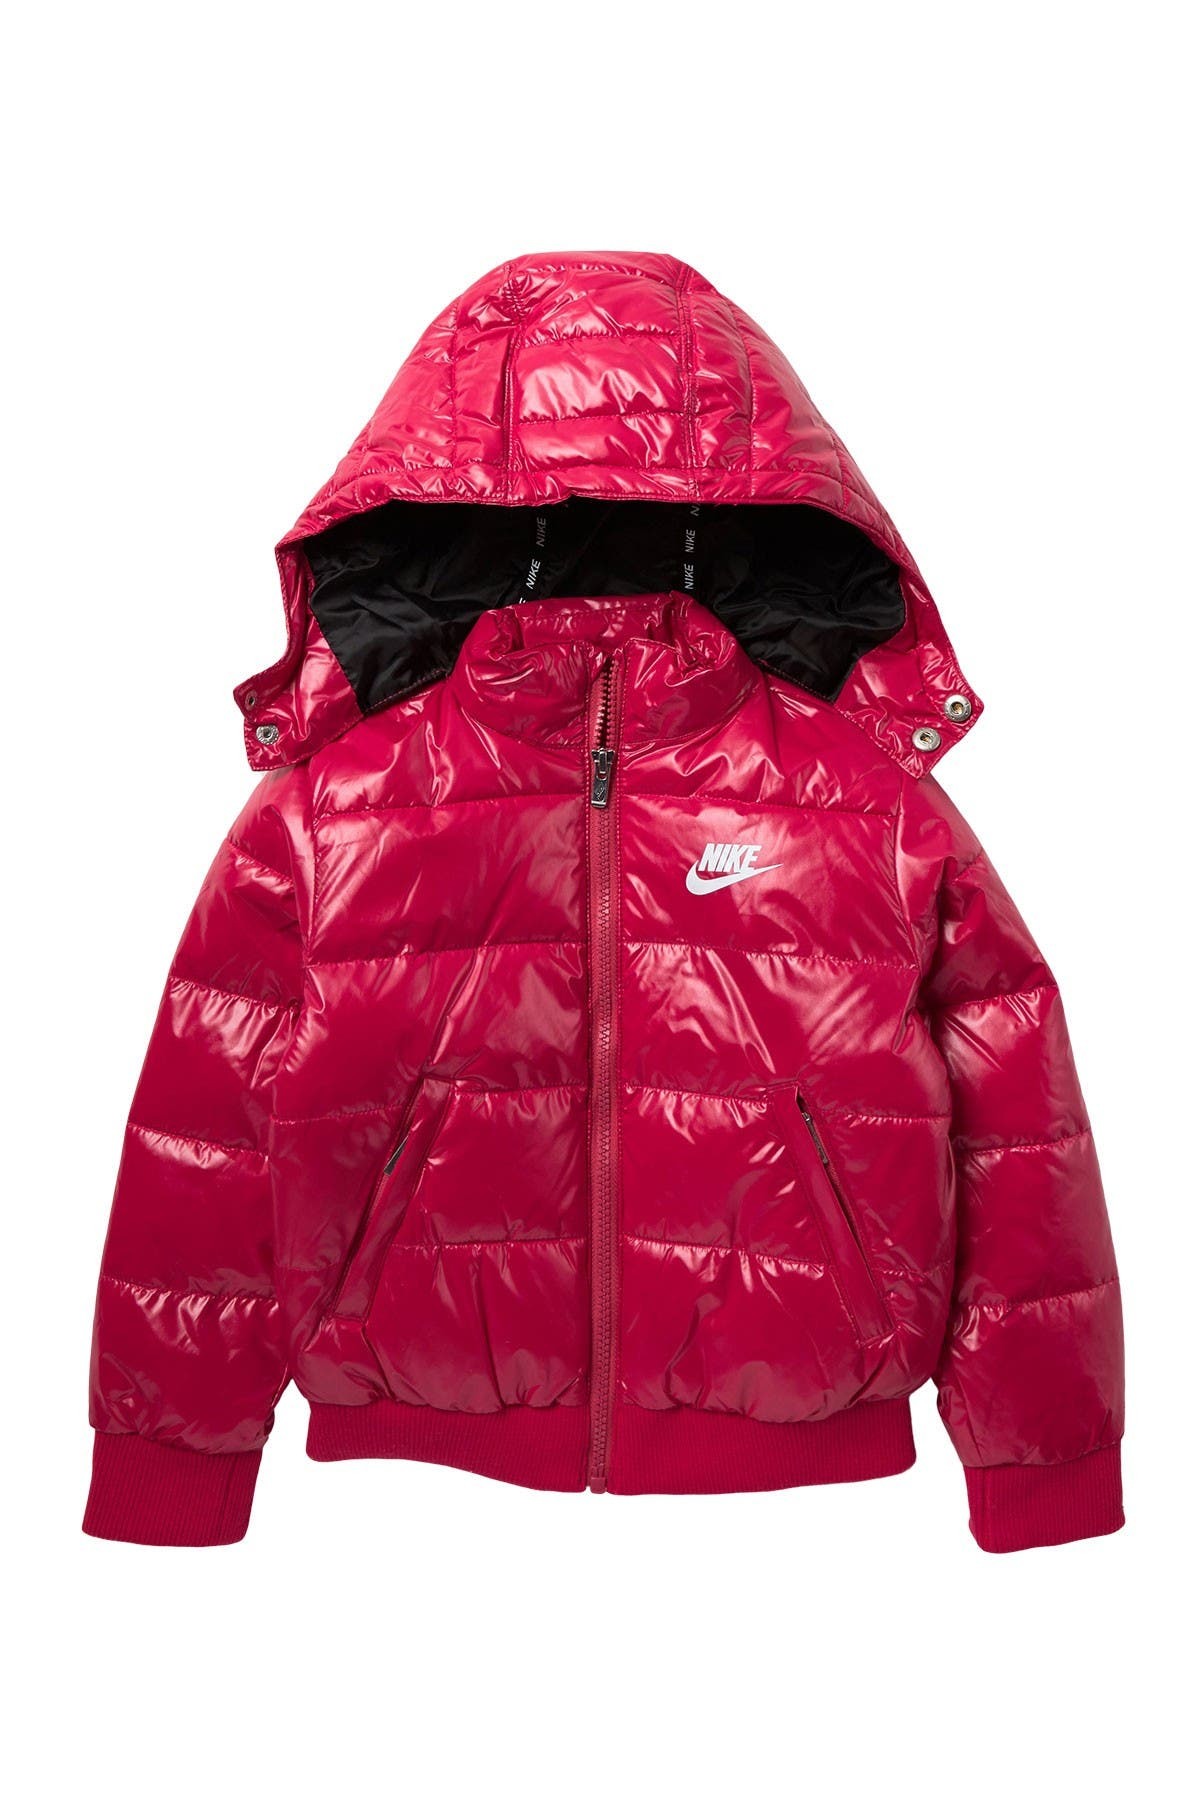 Image of Nike Quilted Puffer Hooded Jacket